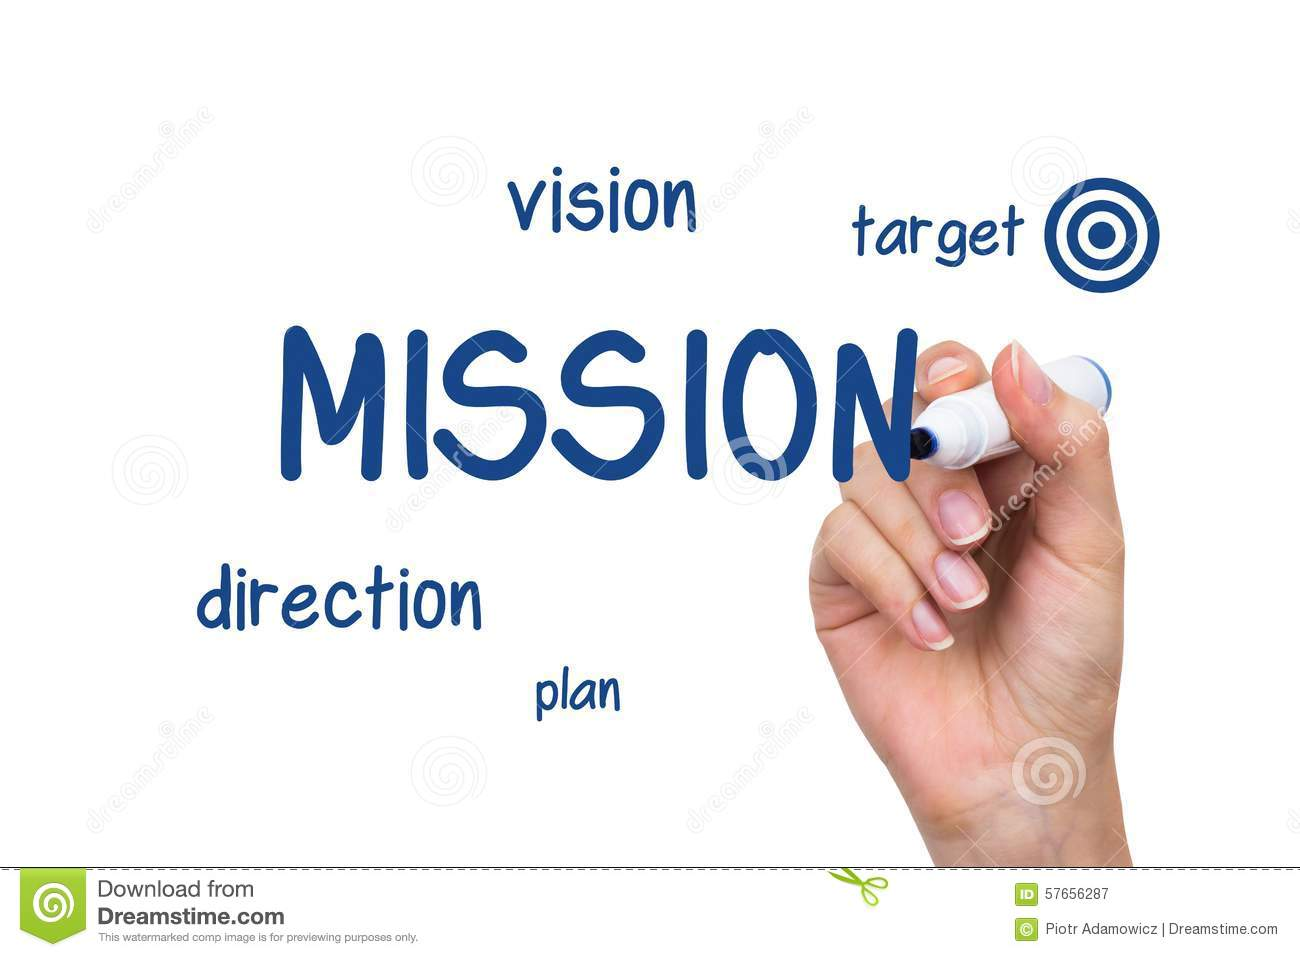 How to Write Mission Statement for a Fun Committee?